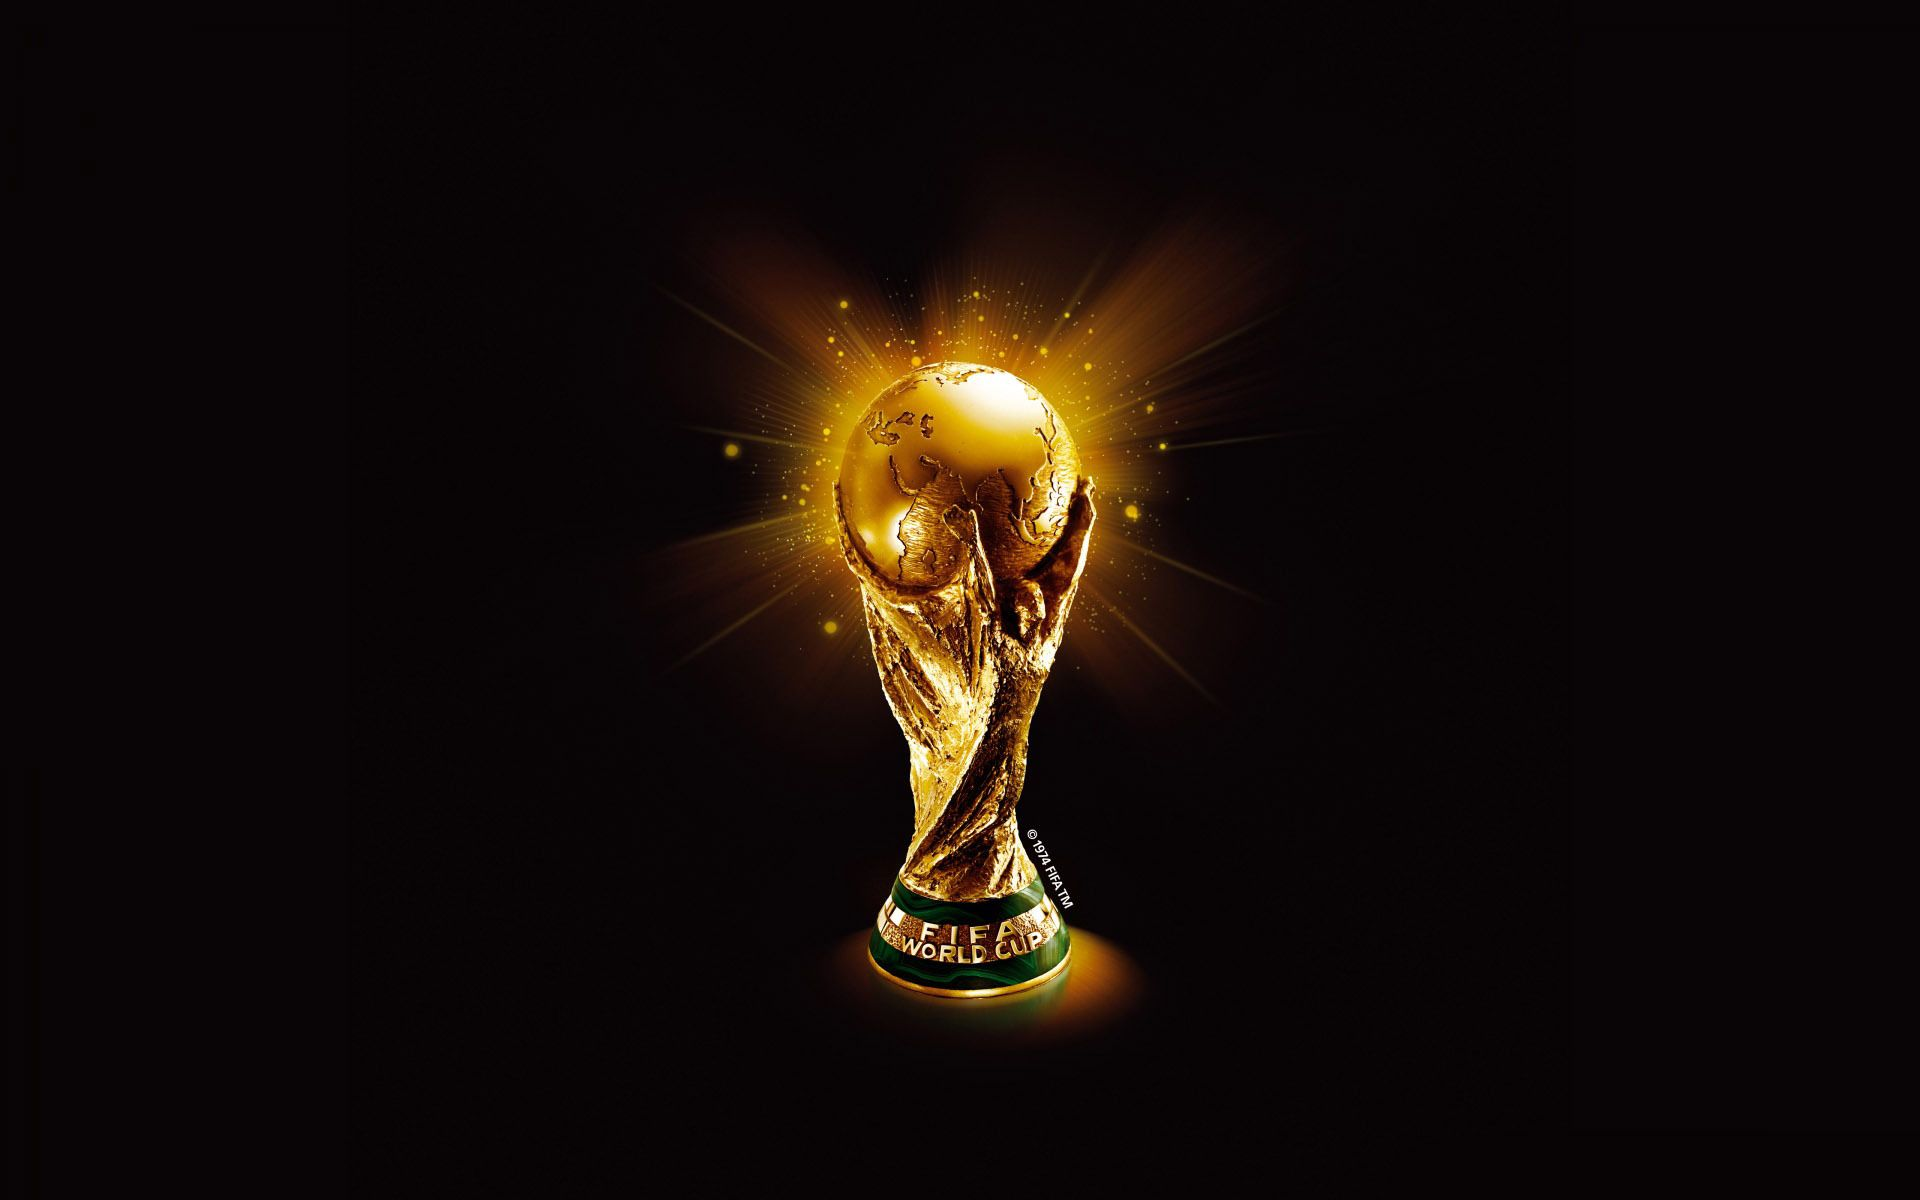 essay about soccer world cup The 2014 fifa world cup was the 20th fifa world cup, the quadrennial world championship for men's national football teams organized by fifa.